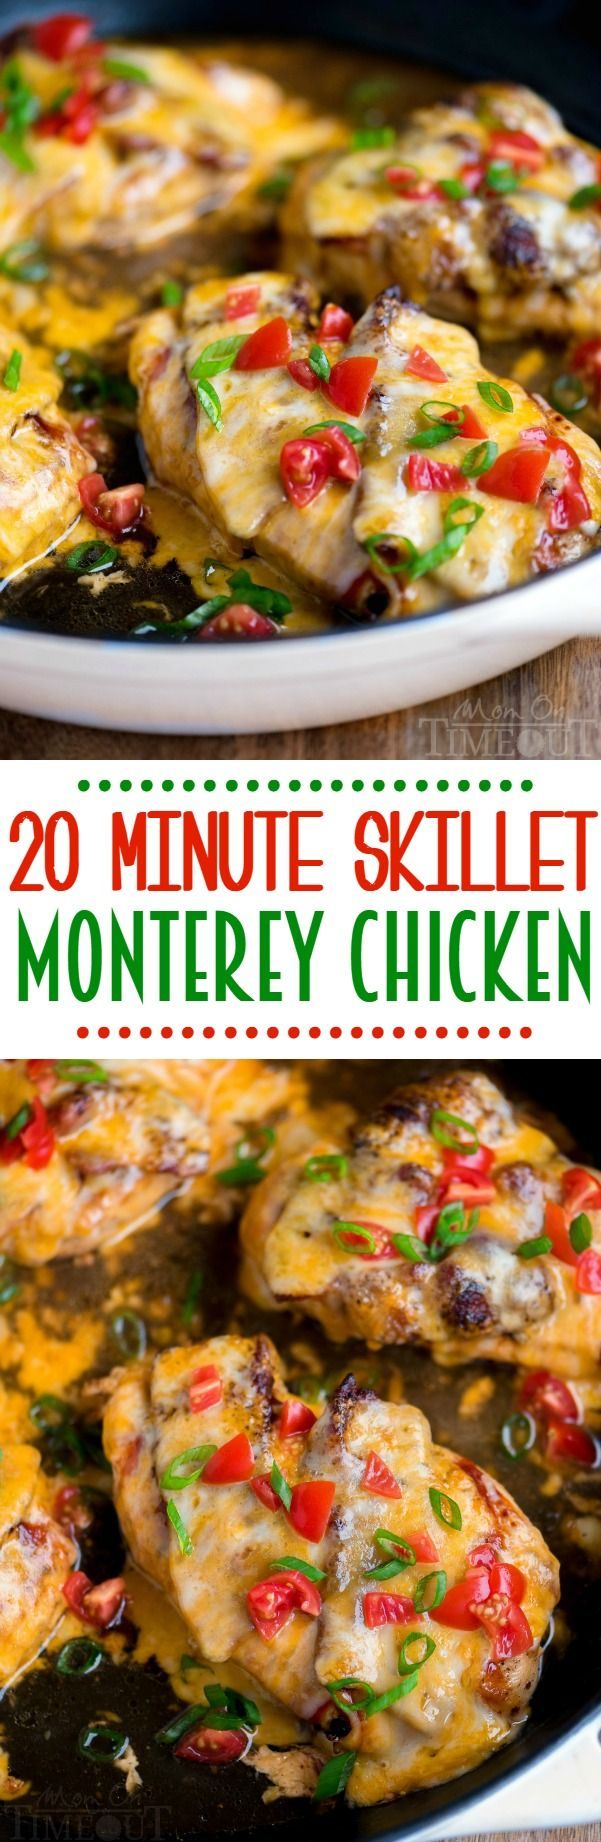 20 Minute Skillet Monterey Chicken on Got 20 minutes? This 20 Minute Skillet Monterey Chicken is just what you want to make for dinner tonight…trust me! Chicken, barbecue sauce, bacon, and glorious cheese come together in this delightful yet simple dish. Sure to become a regular request at your home!